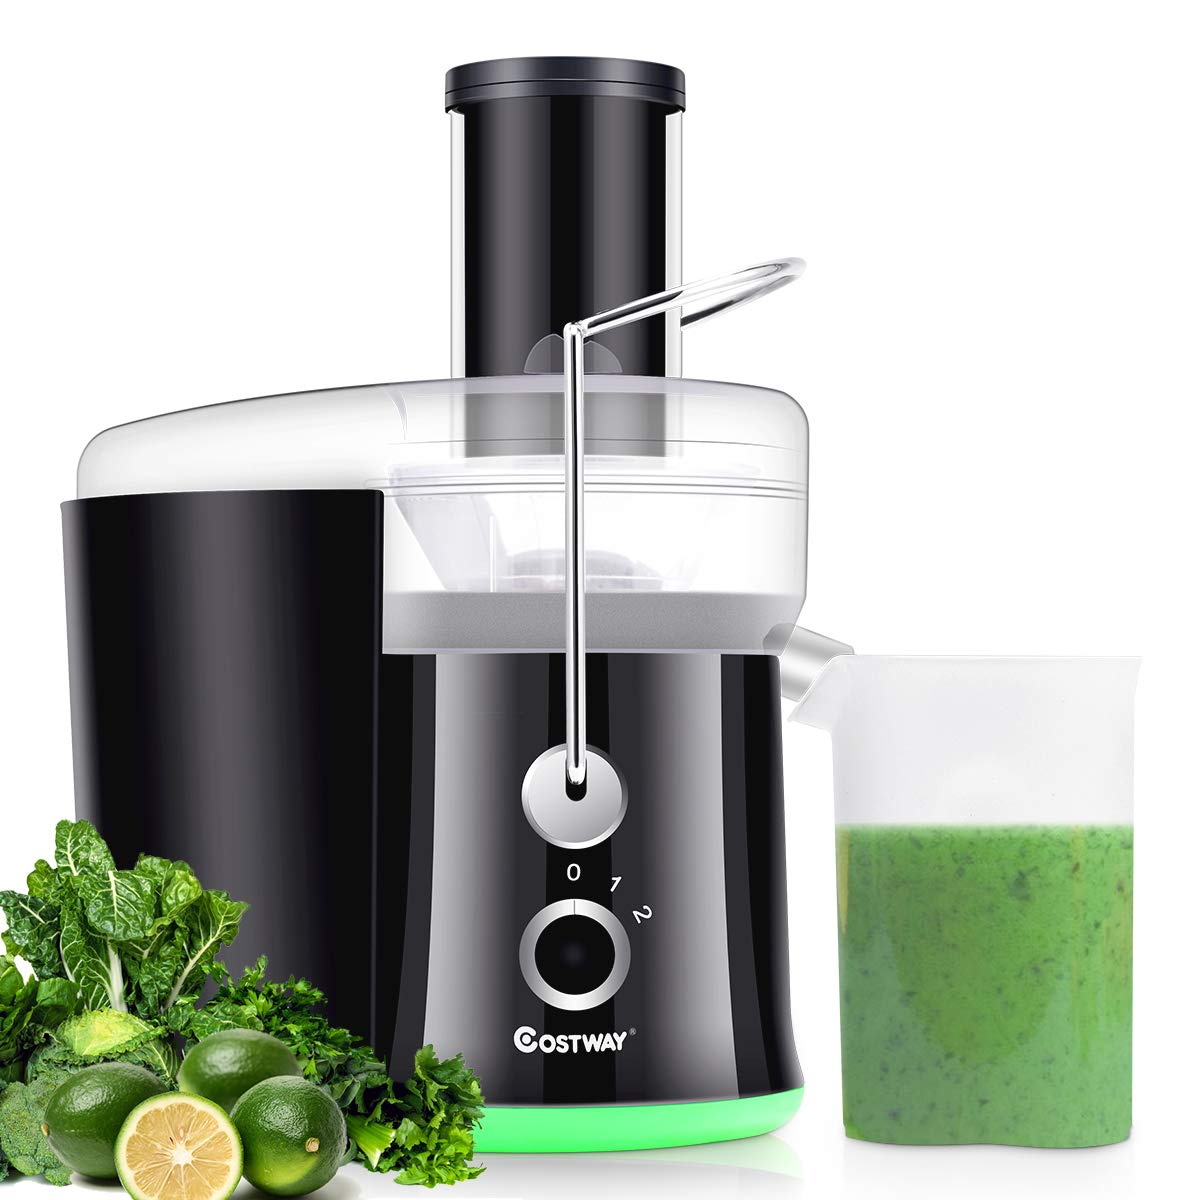 COSTWAY Juice Extractor, 65MM Wide Mouth Stainless Steel Juicer Machines, 2-Speed Setting High Speed Masticating Juicer Machine for Fruits and Vegetable with Slag Pot and Juice Jug, BPA-Free (Black+Green)